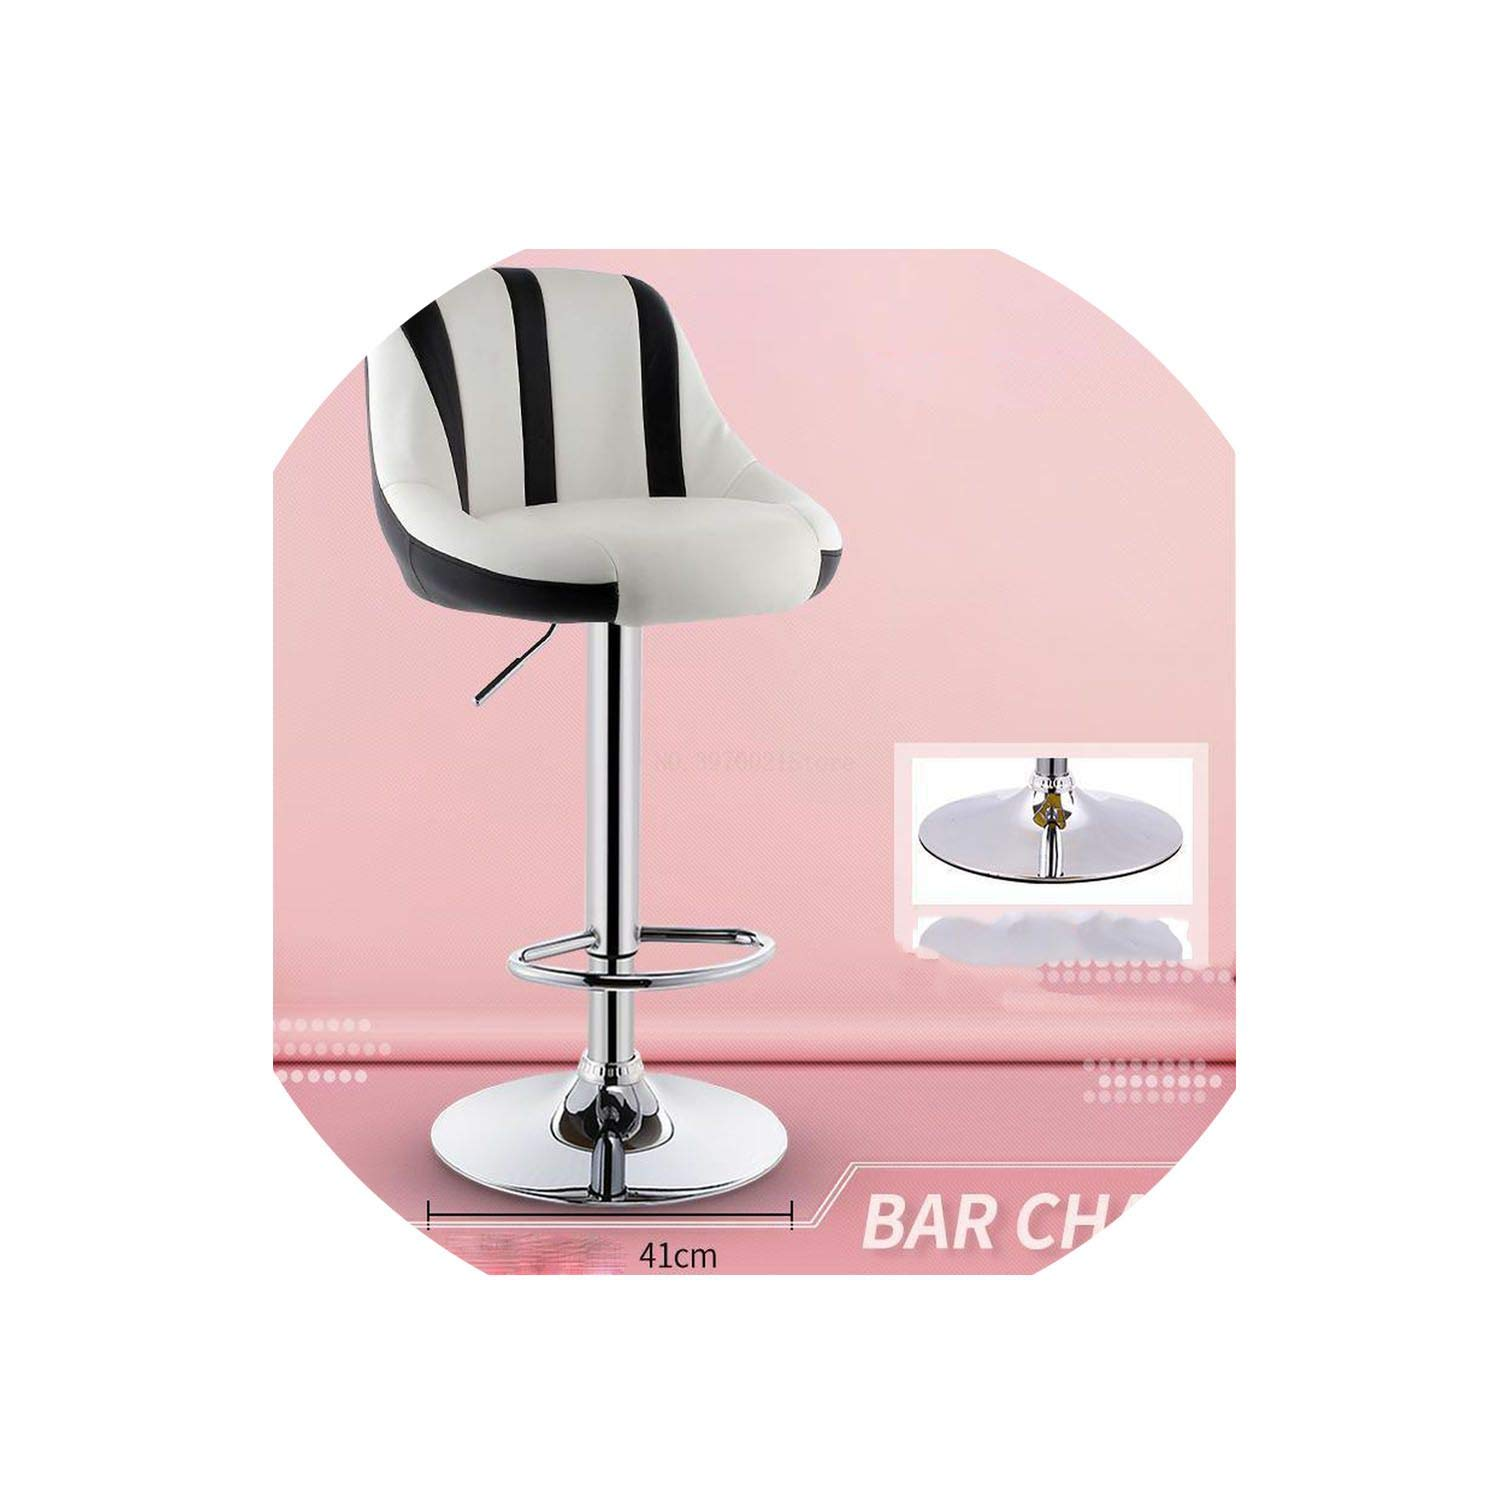 9 one size Bar Stool Lift redating Bar Chair Cash Register High Stool Home Beauty Front Back Stool,13